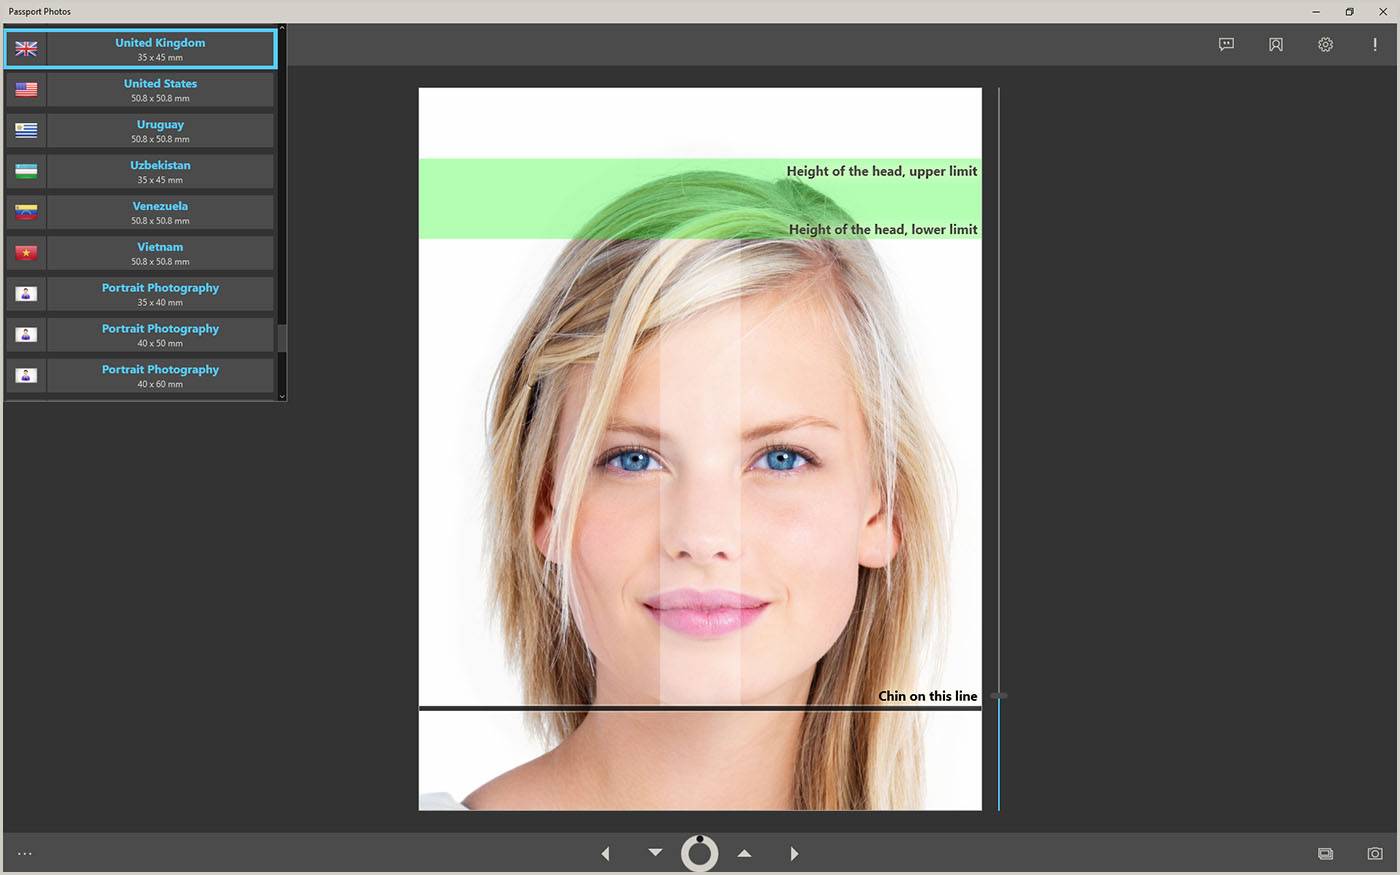 Selection of a passport photo template